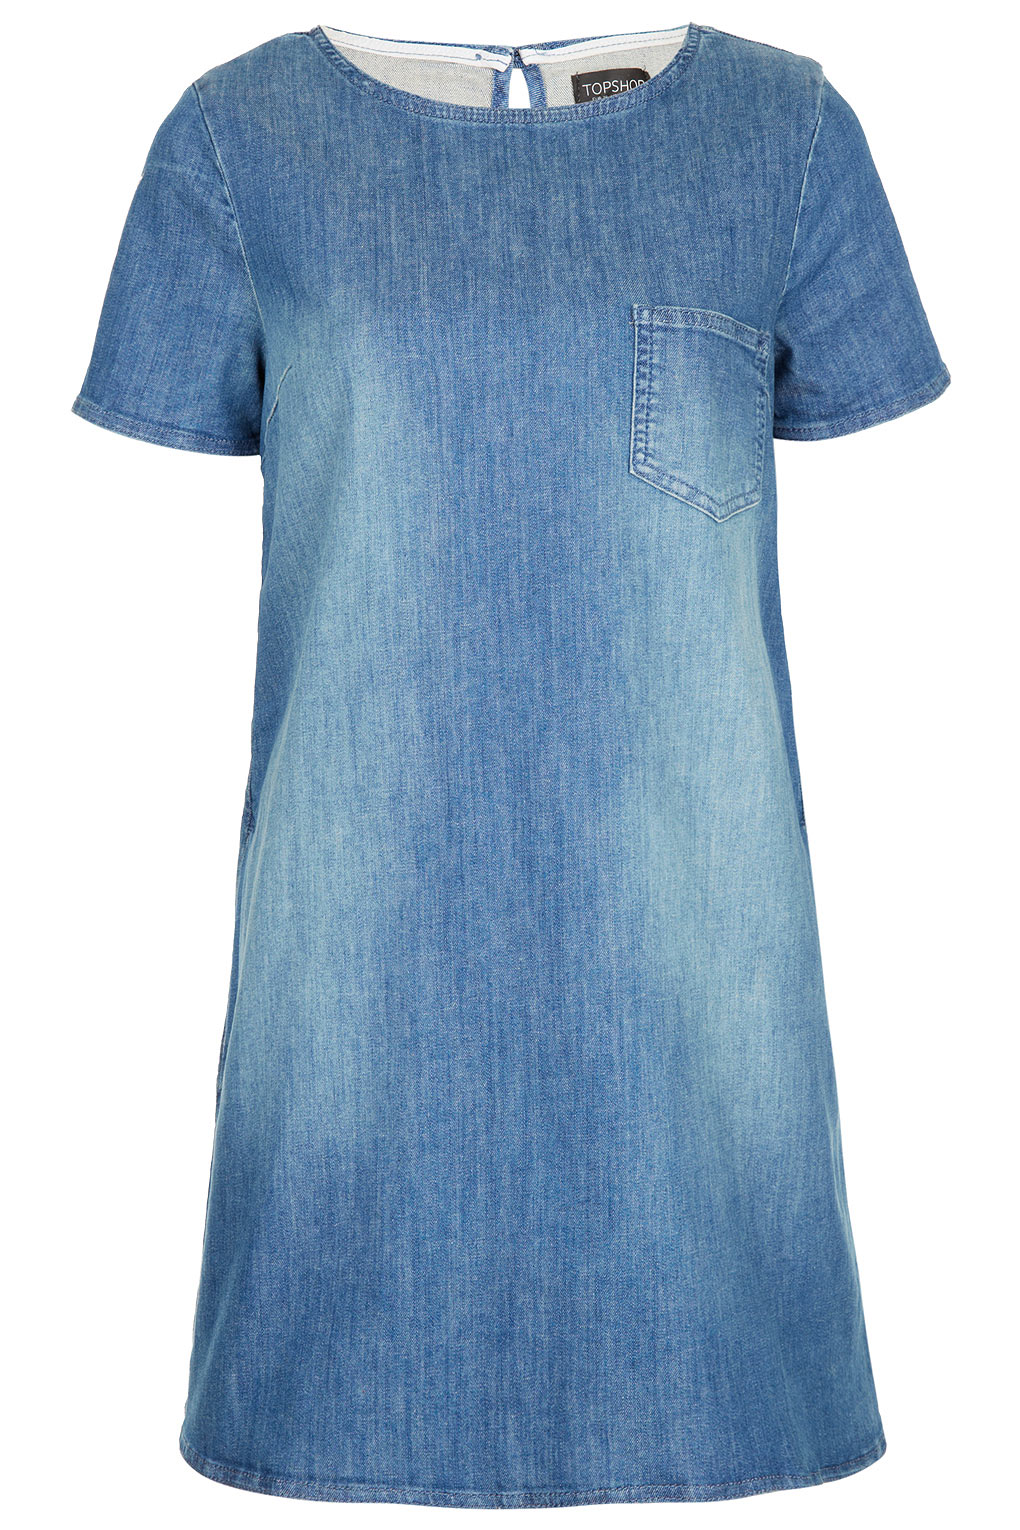 Topshop pocket denim swing dress in blue lyst for Womens denim shirts topshop